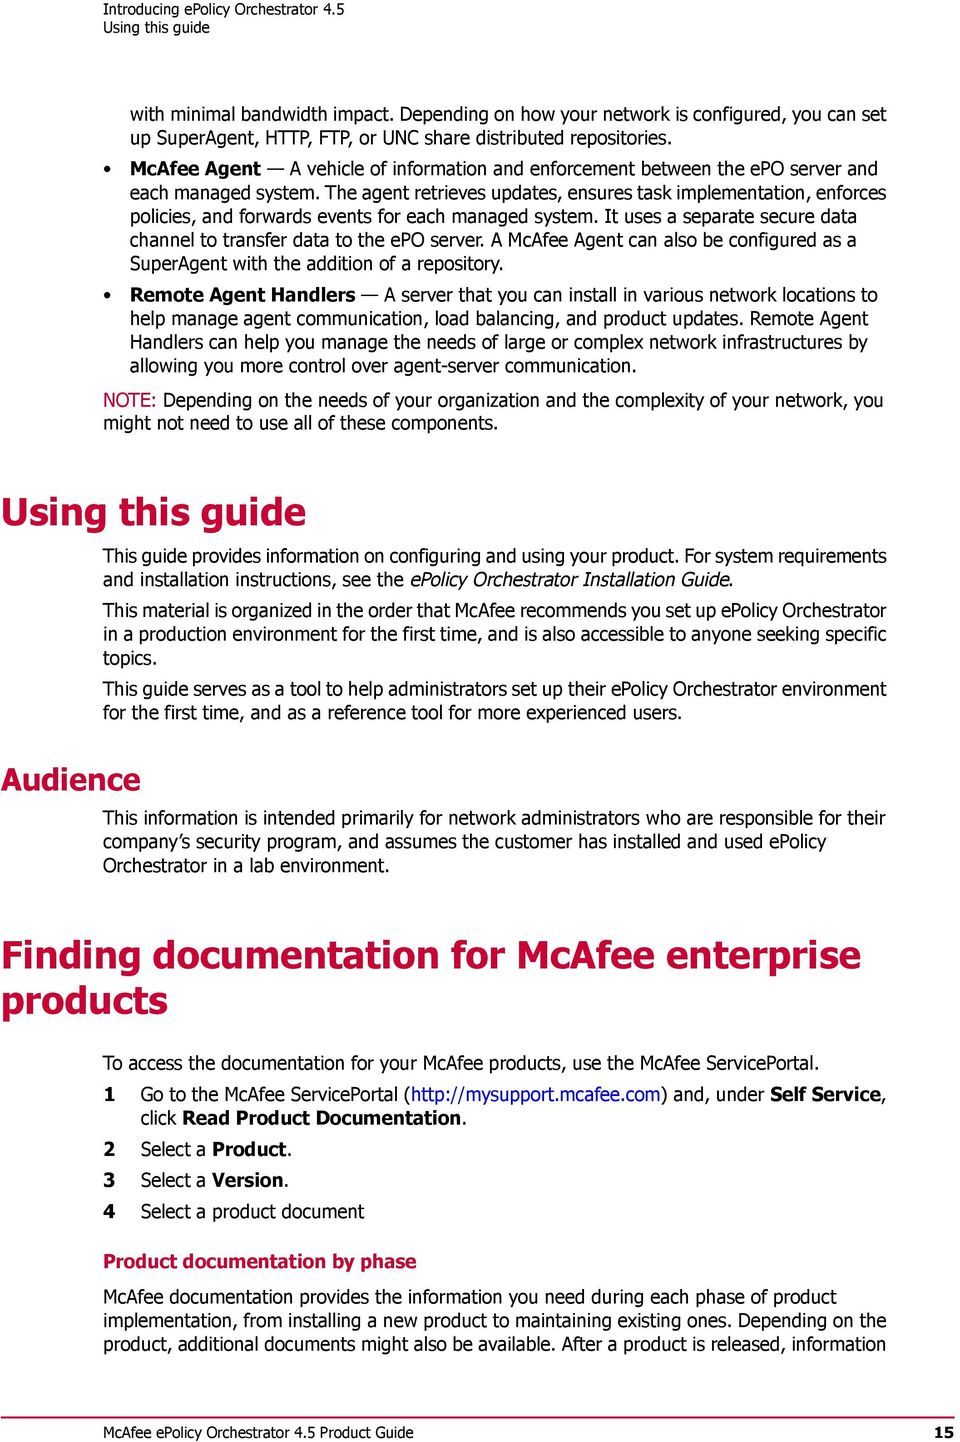 McAfee Agent A vehicle of information and enforcement between the epo server and each managed system.